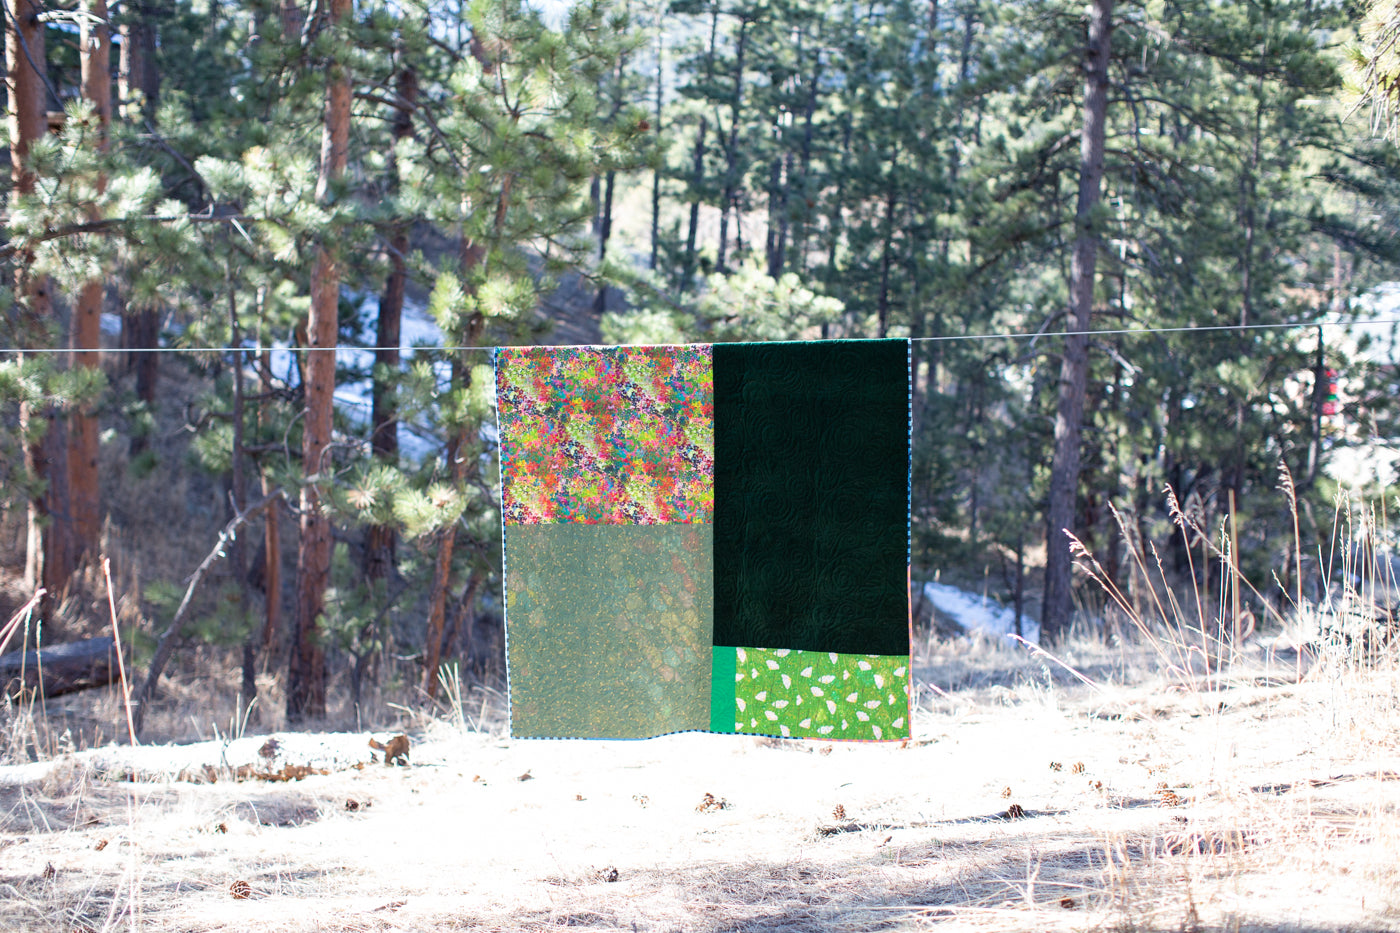 Quilt hanging up in a sunny backyard with evergreens.  The quilt is divided into 4 uneven quarters.  Upper left is colorful flowers, lower is light green and white, upper right is dark velvet green and lower right is bright irish green and white.